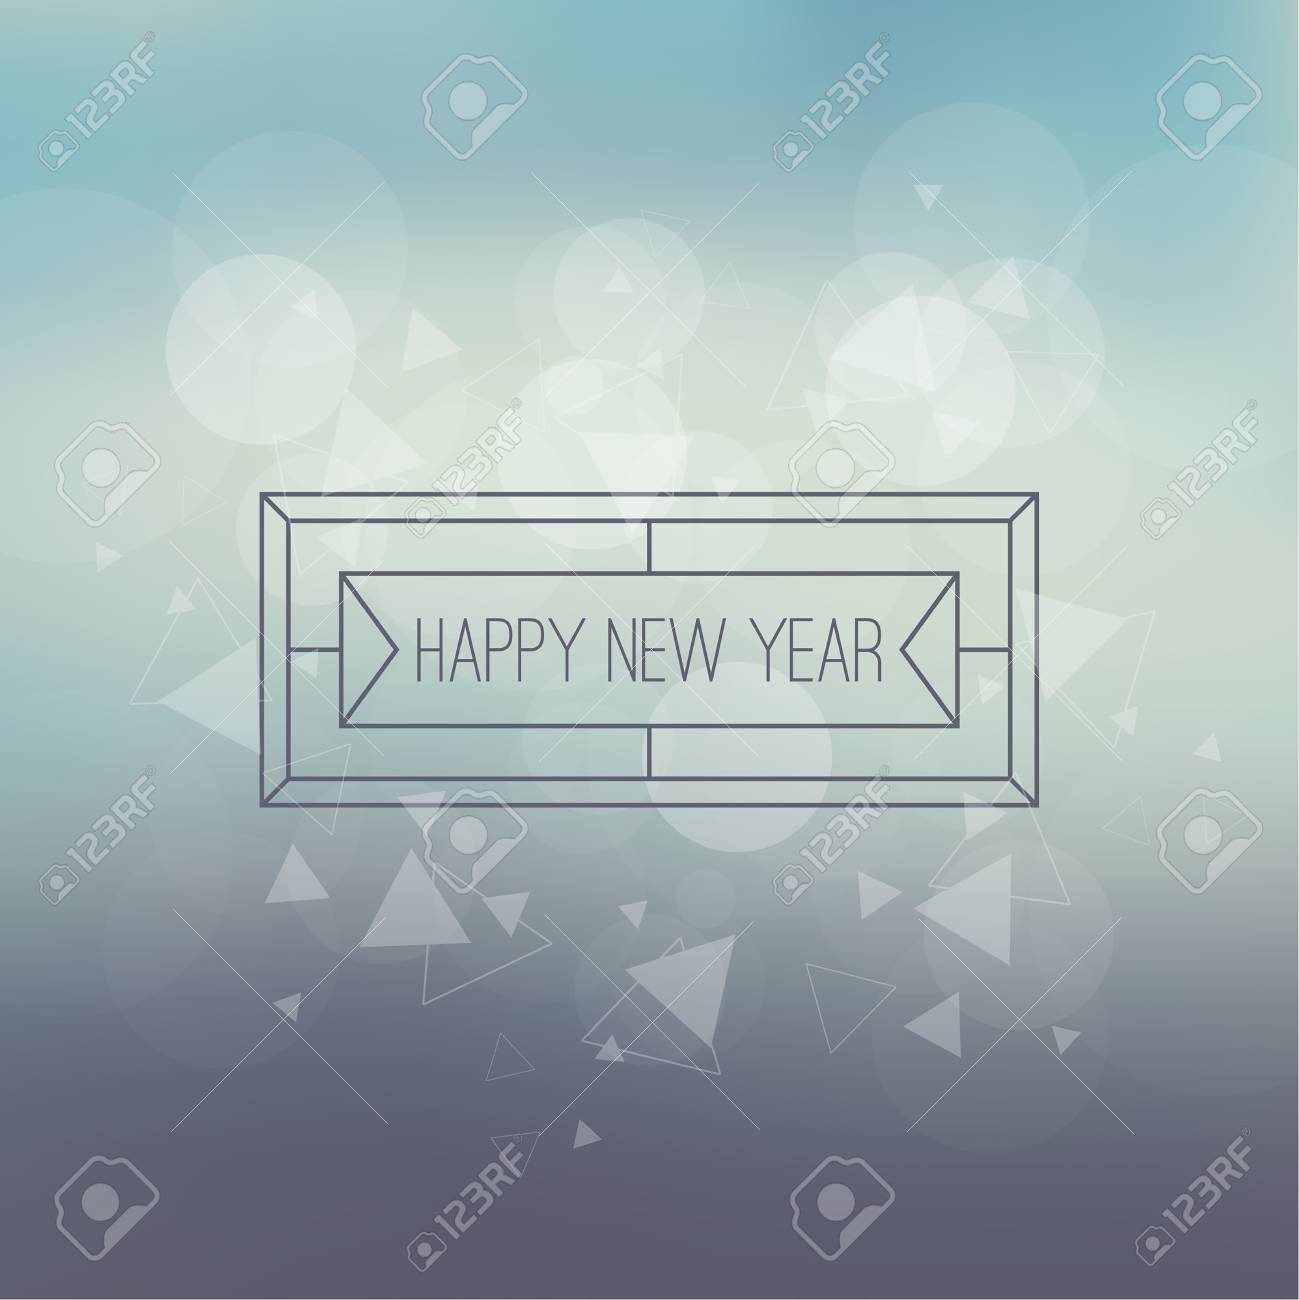 abstract blurred vector background with sparkle stars and hipster border frame for decorations for